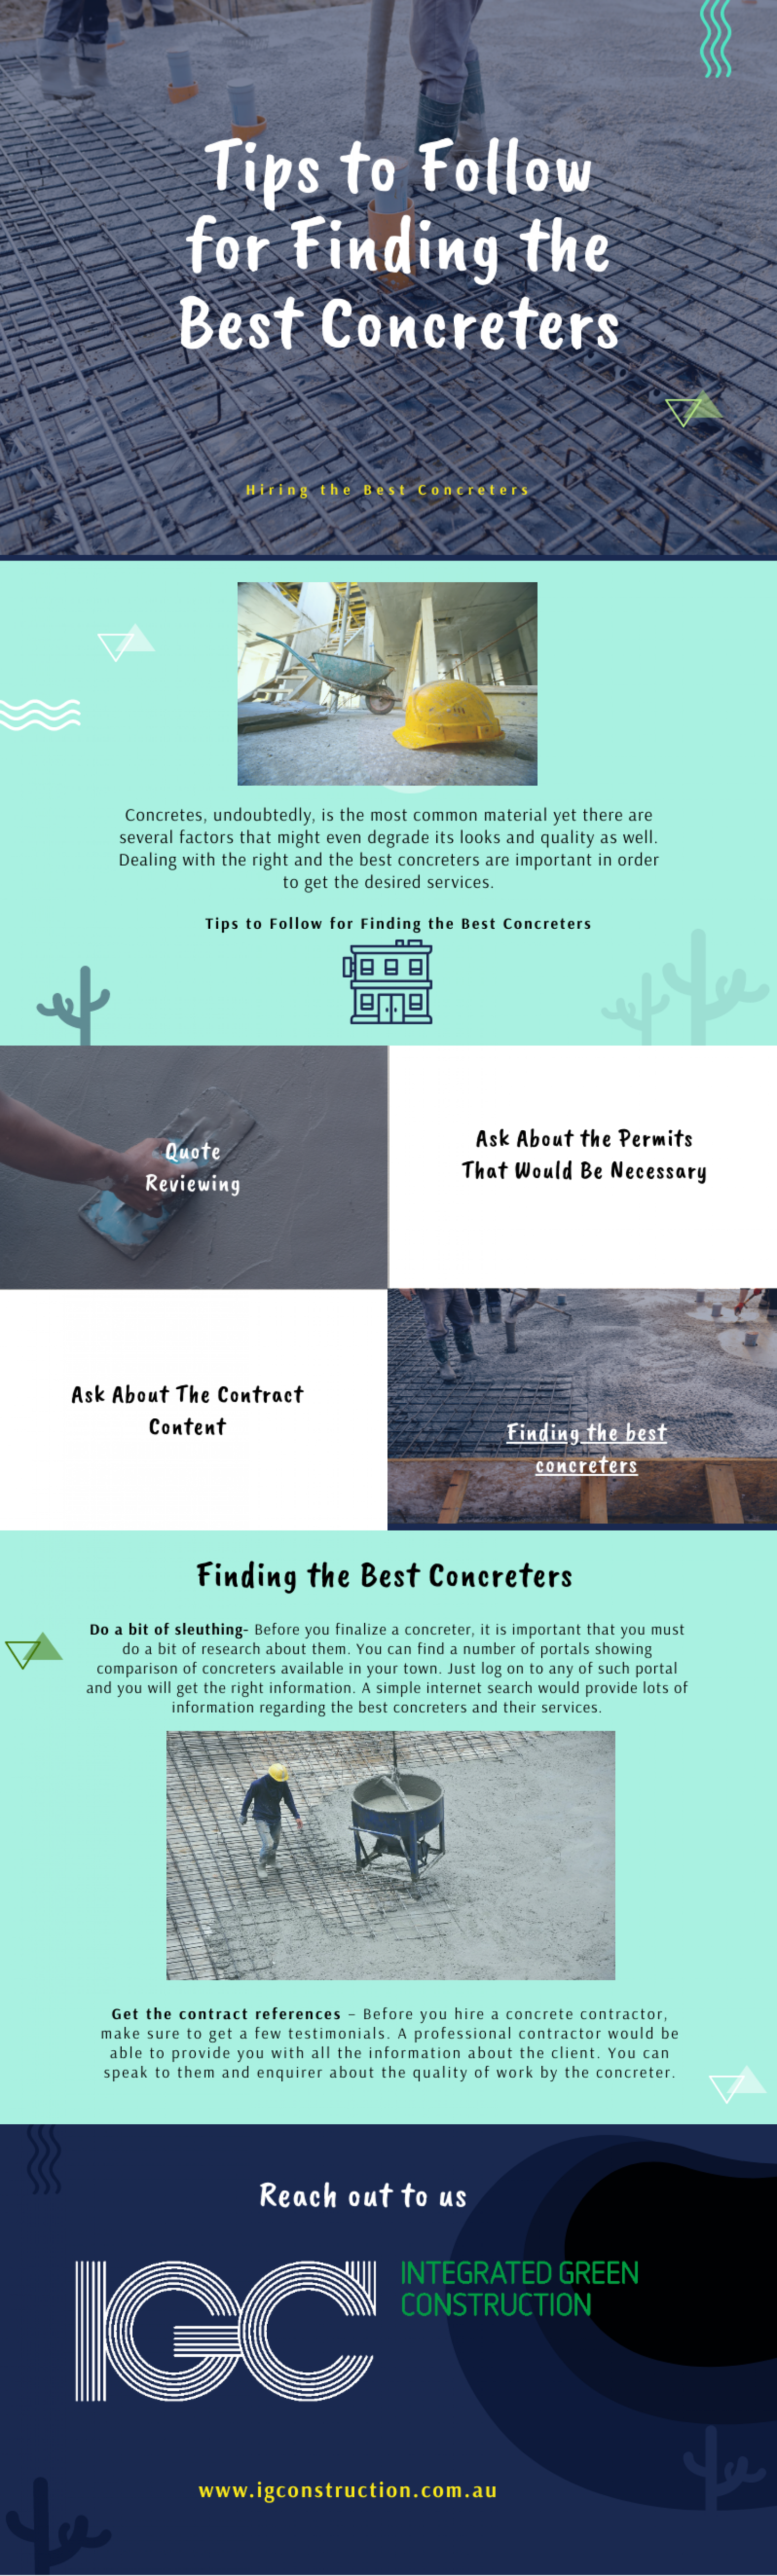 Tips to Follow for Finding the Best Concreters  Infographic